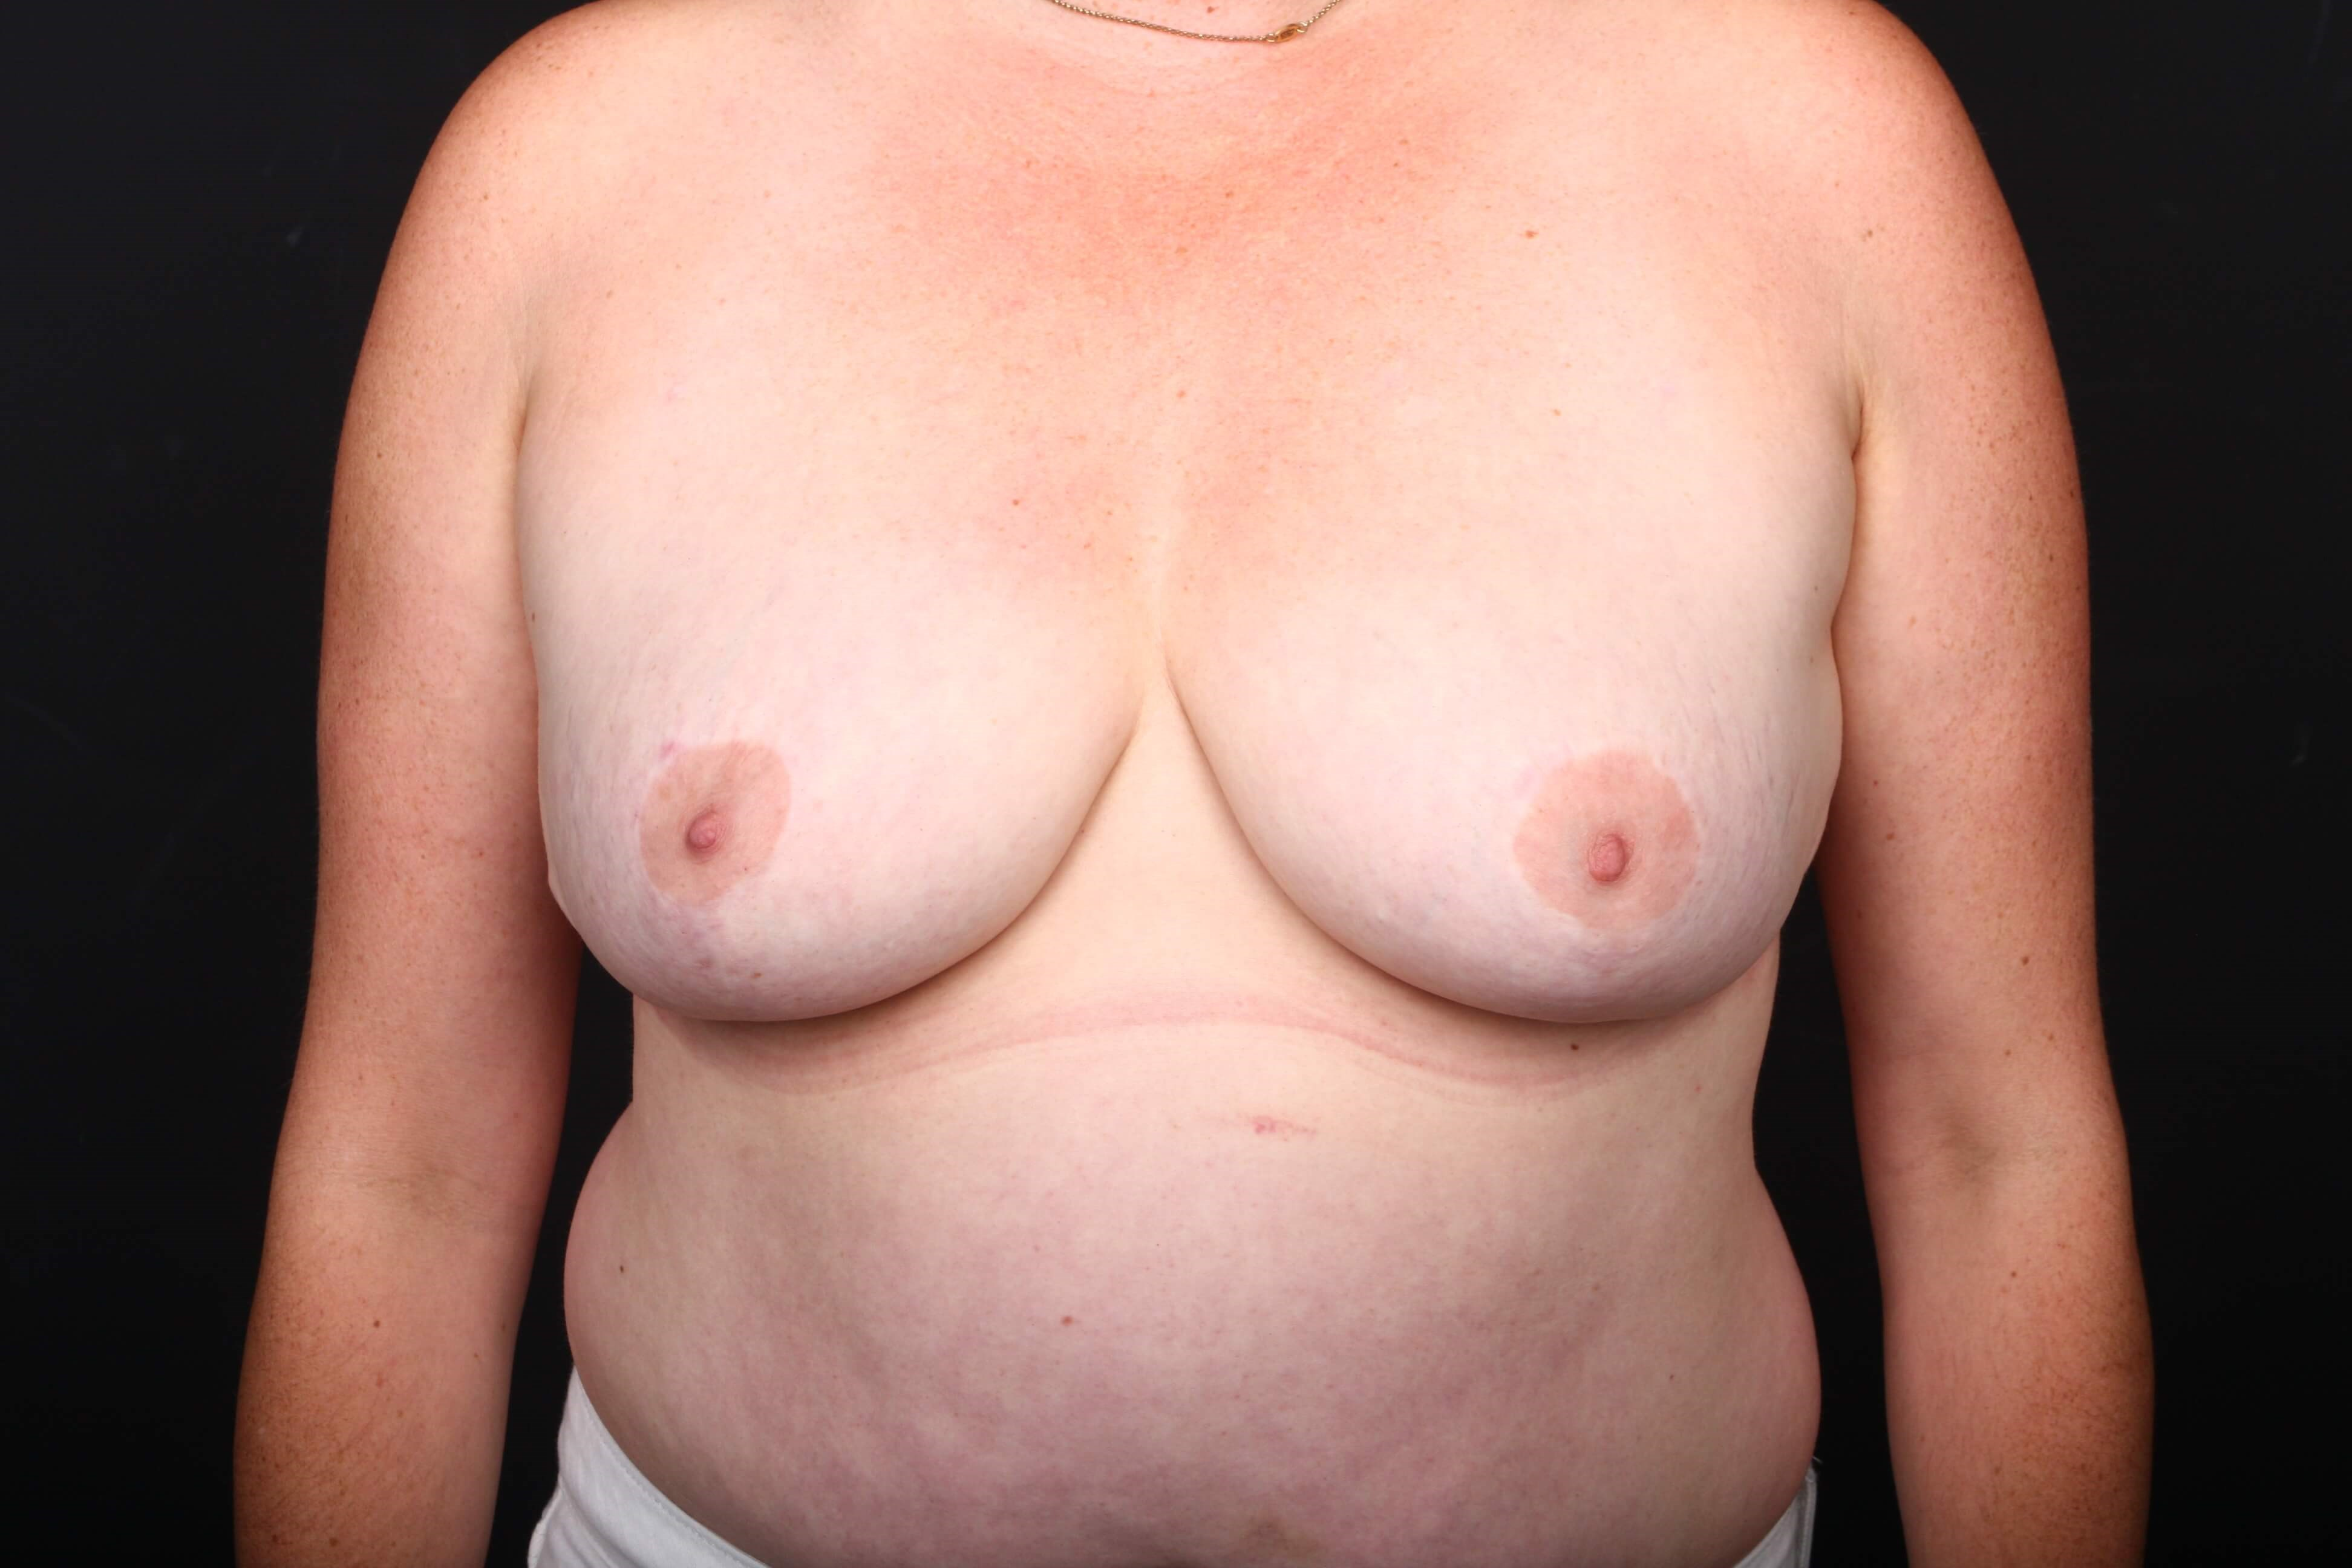 40 y/o breast reduction After front view